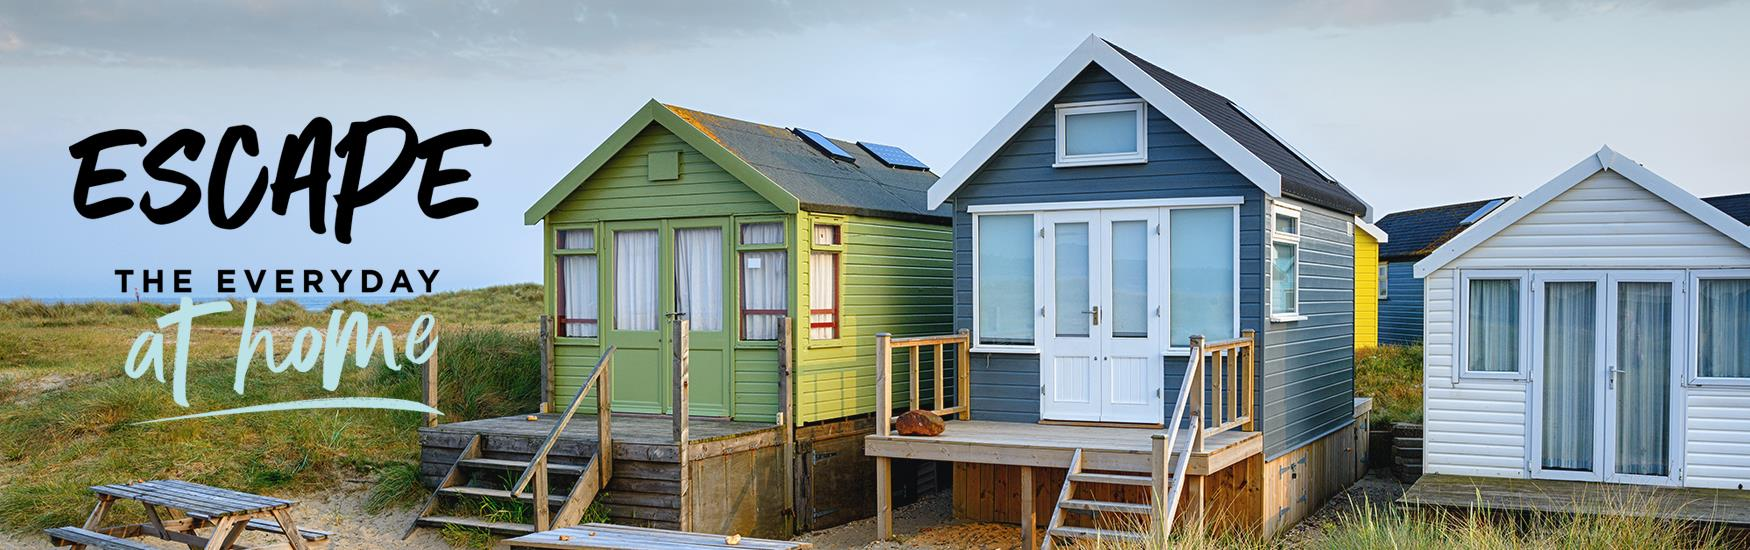 Mudeford Beach huts in the day with the text Escape the Everyday at home